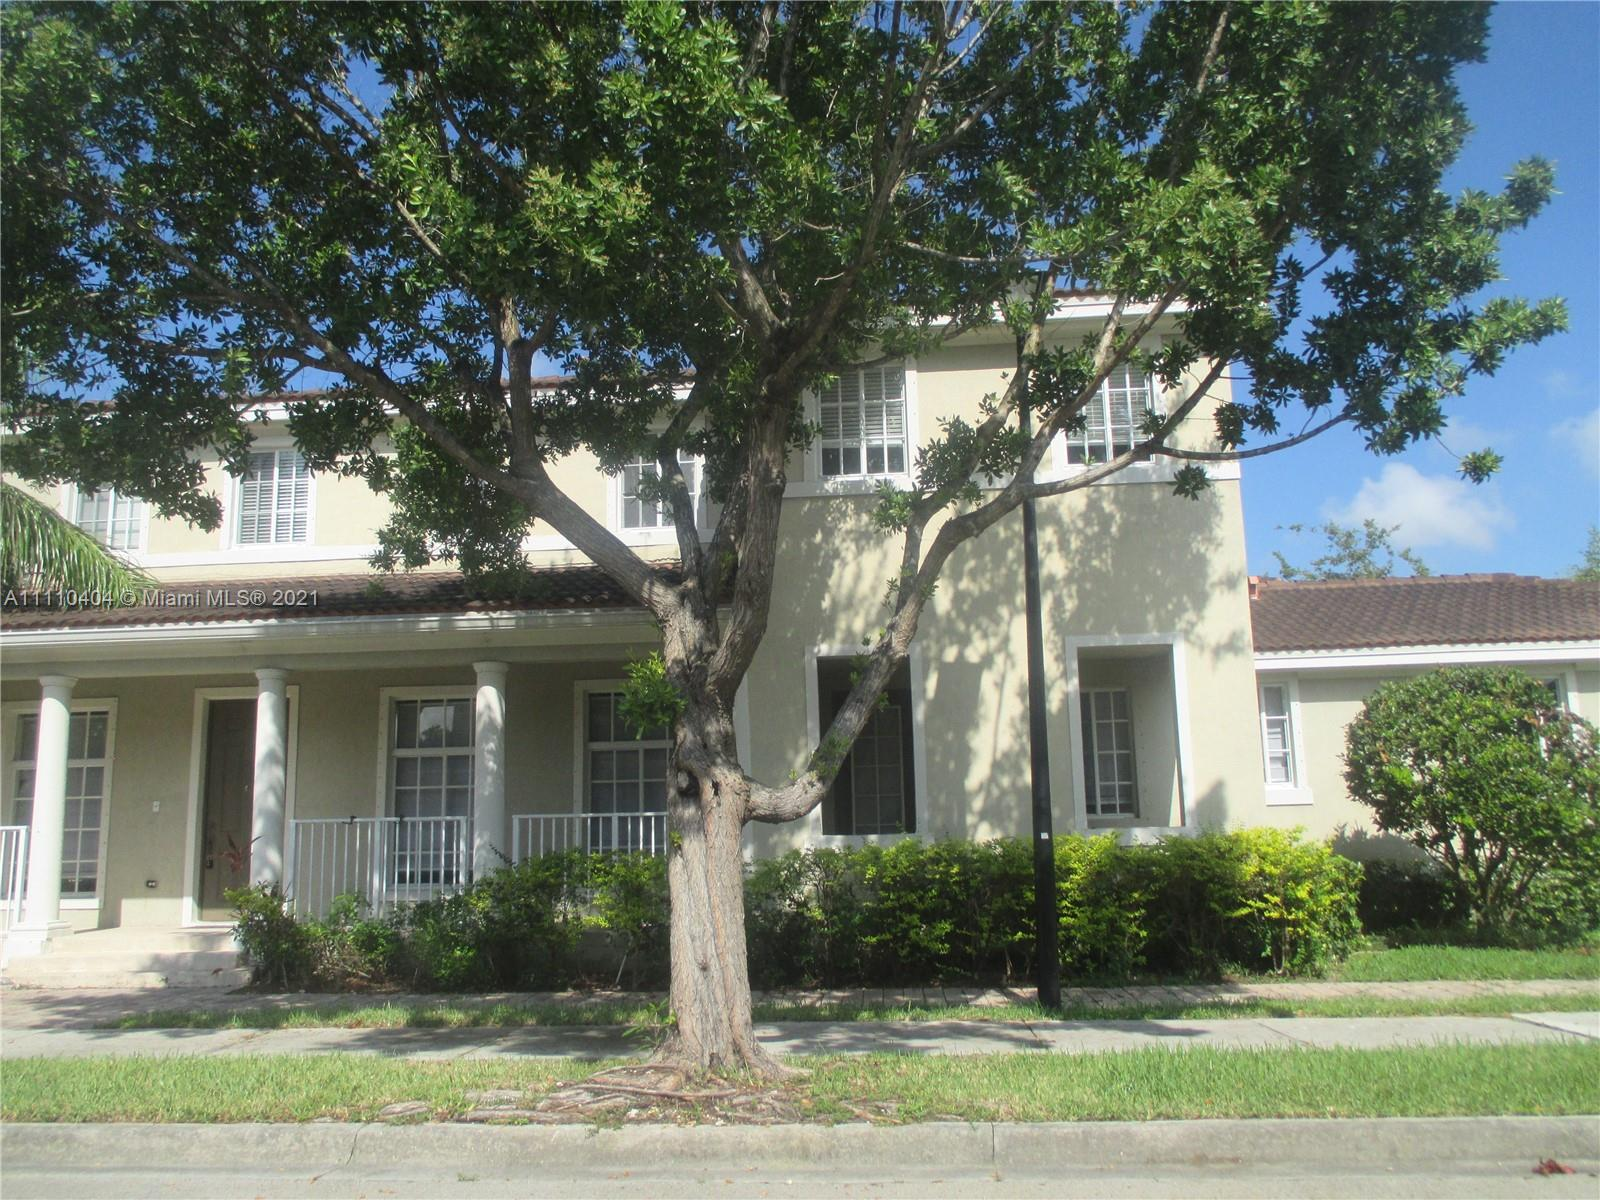 Single Family Home,For Rent,27379 SW 143rd Ct #27379, Homestead, Florida 33032,Brickell,realty,broker,condos near me